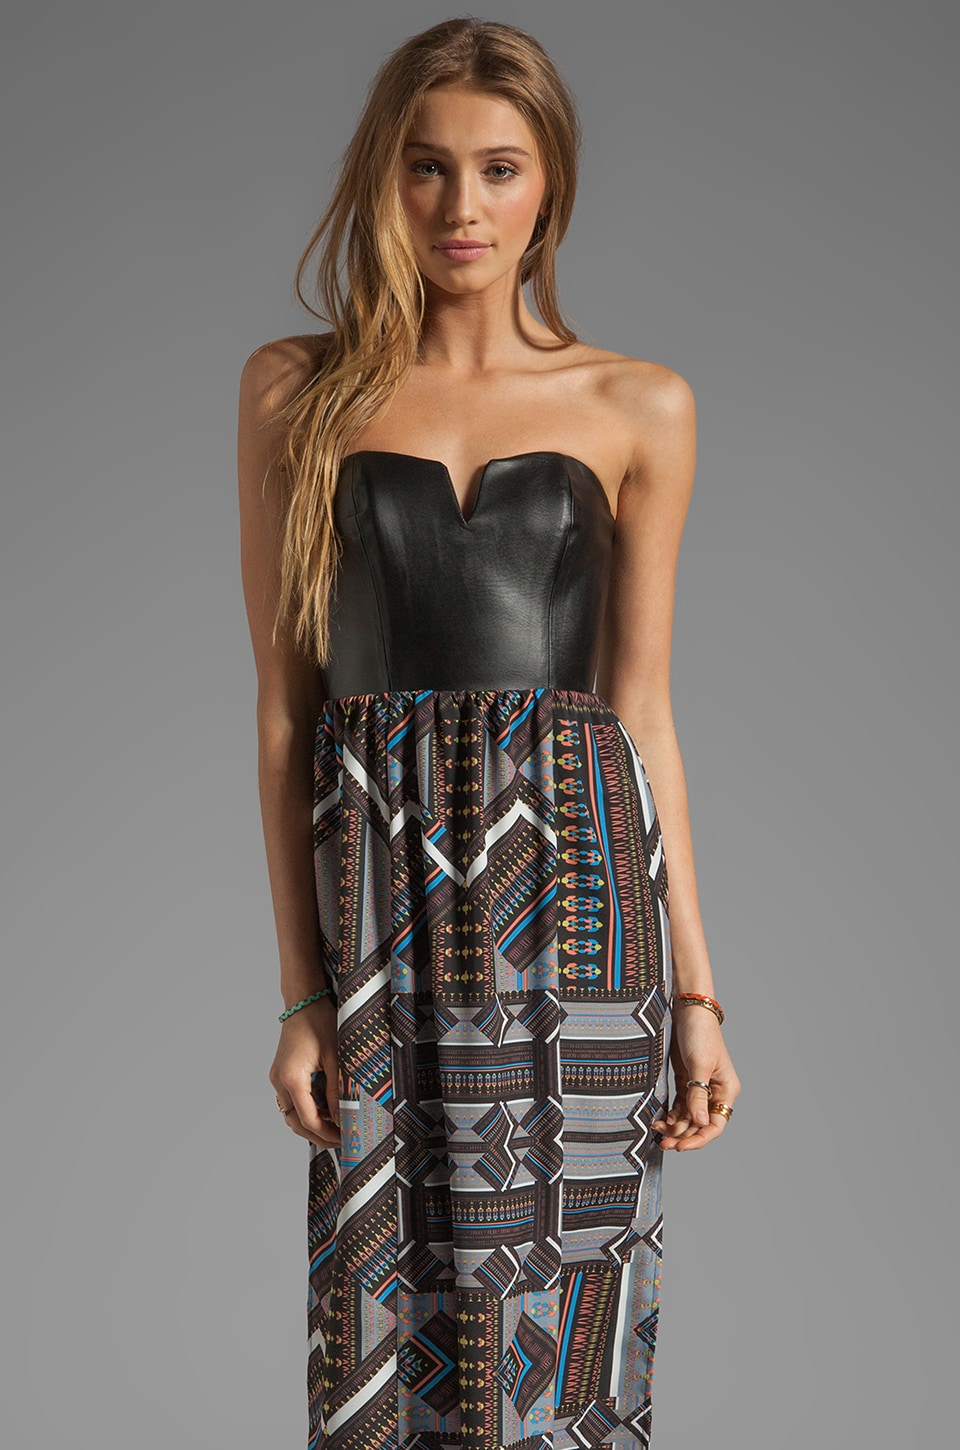 Ladakh Tribal Jigsaw Maxi Dress in Multi